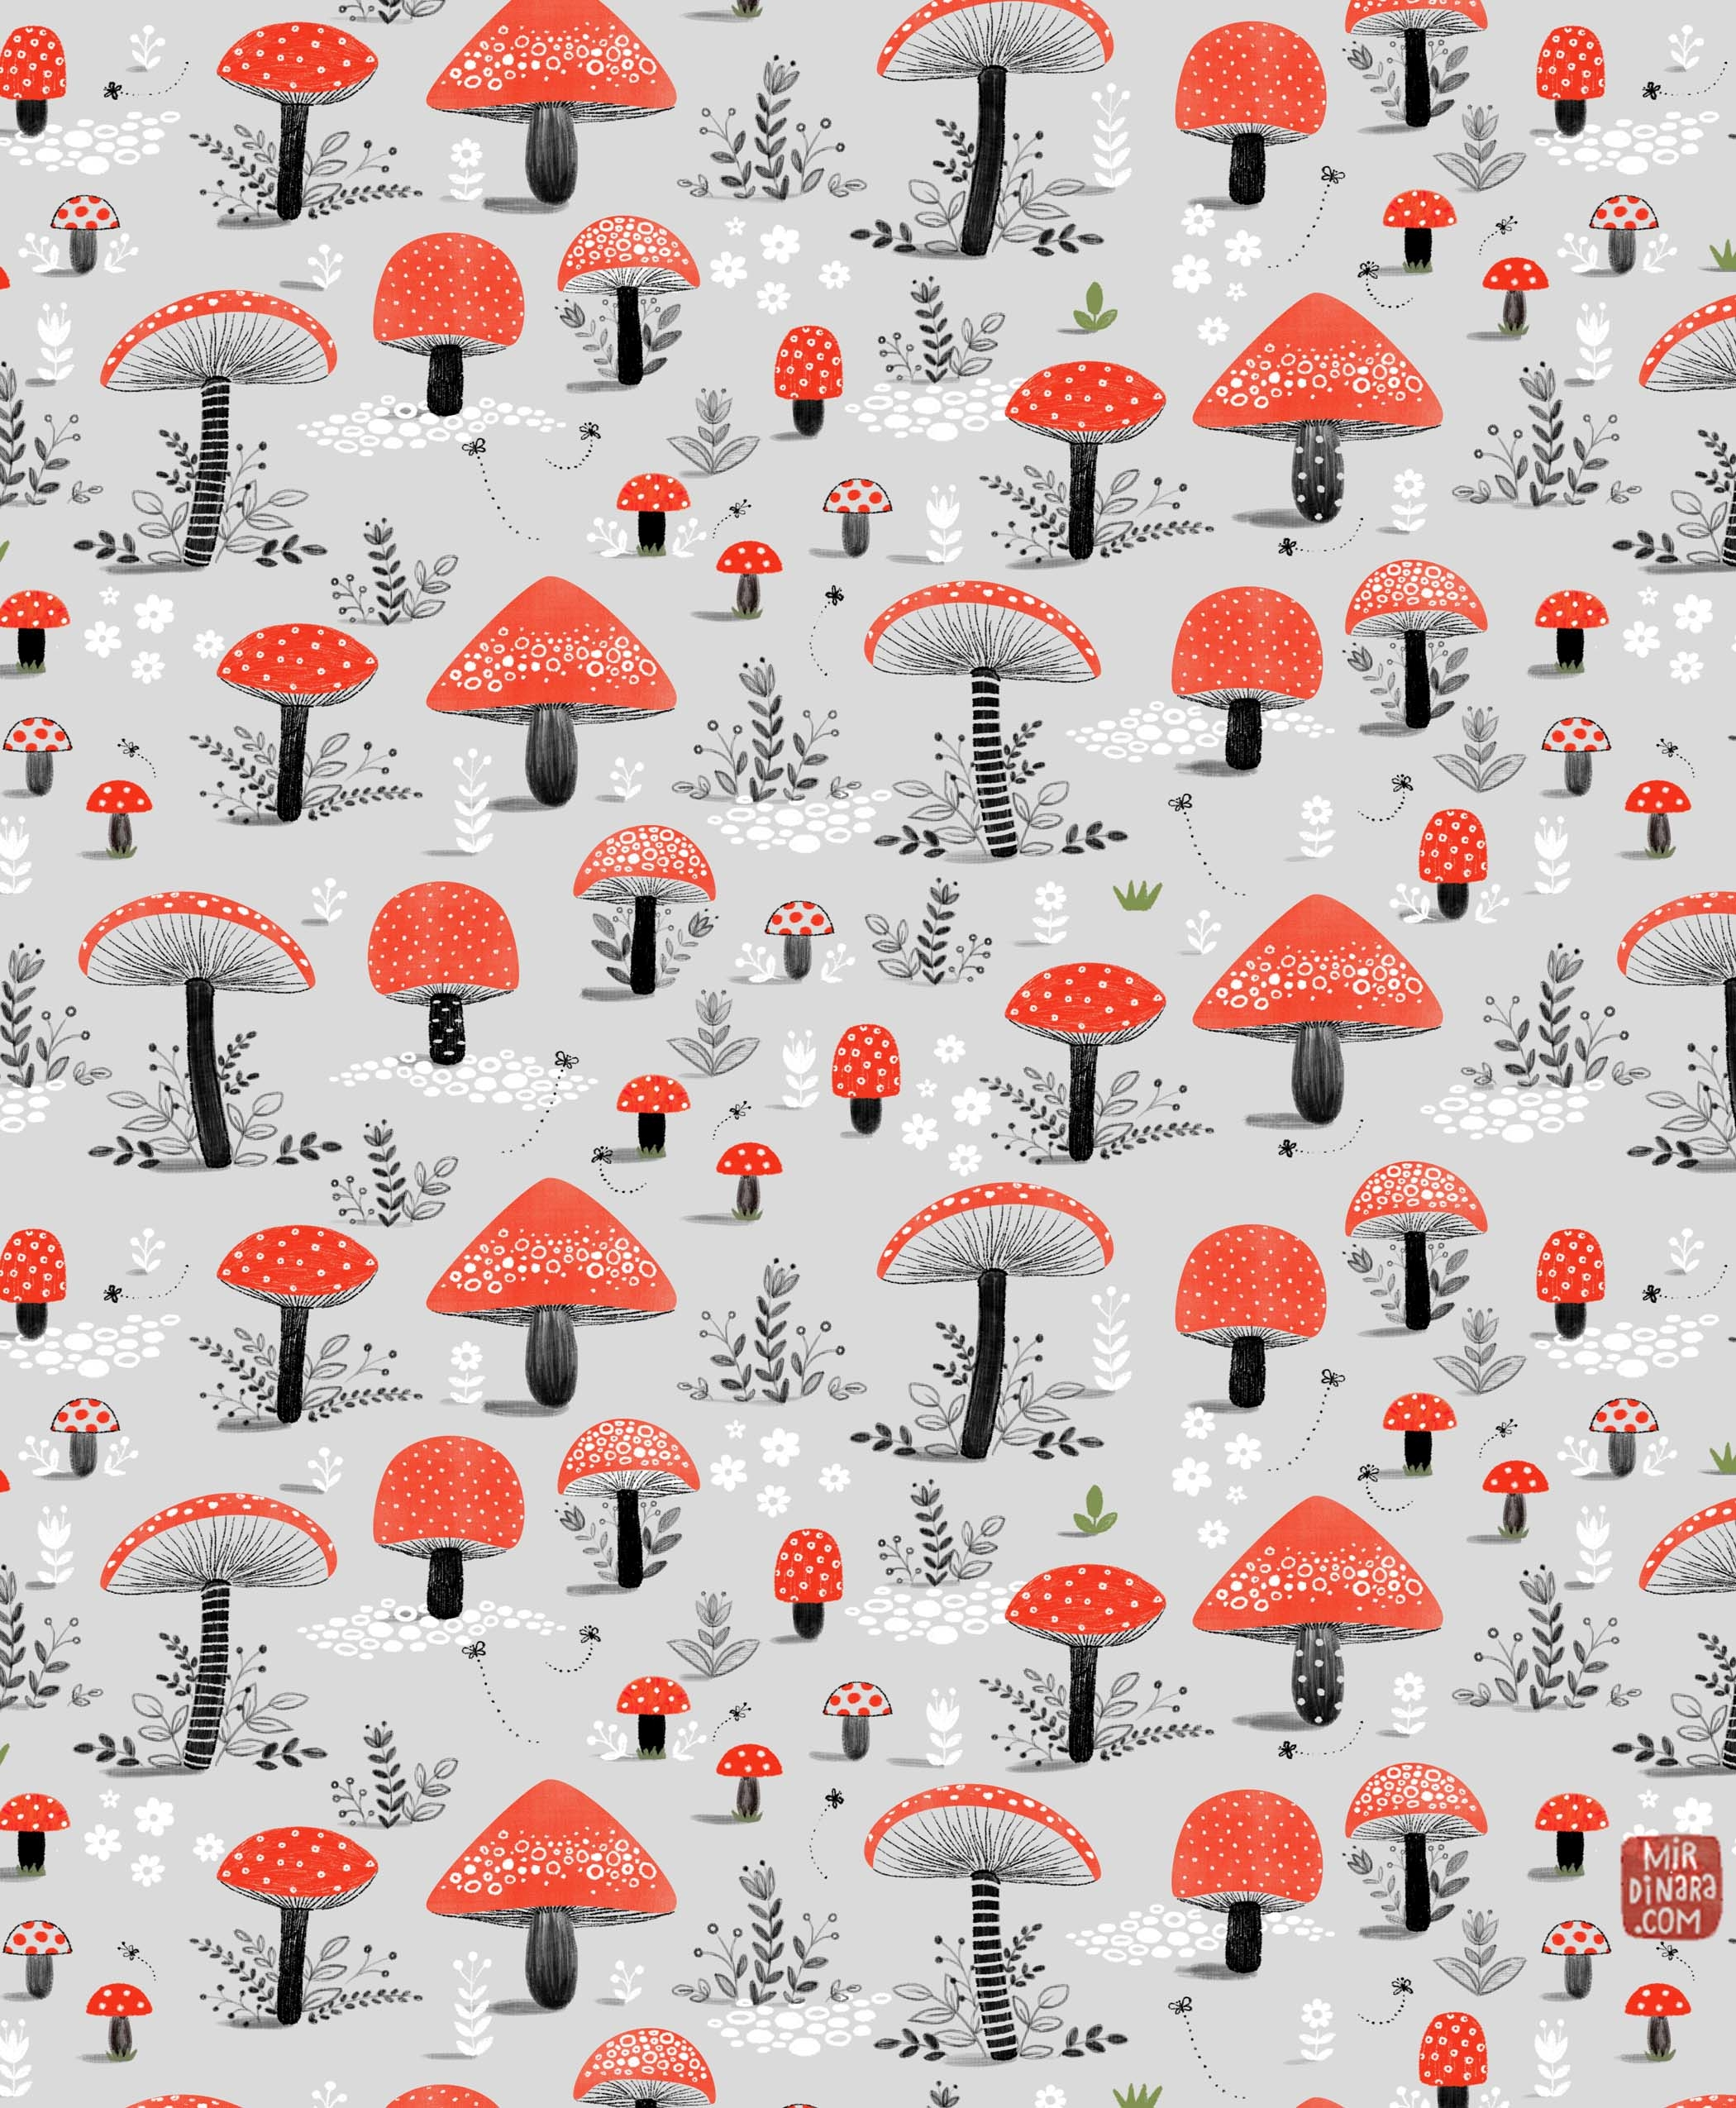 repeating pattern design tips for artists digital arts